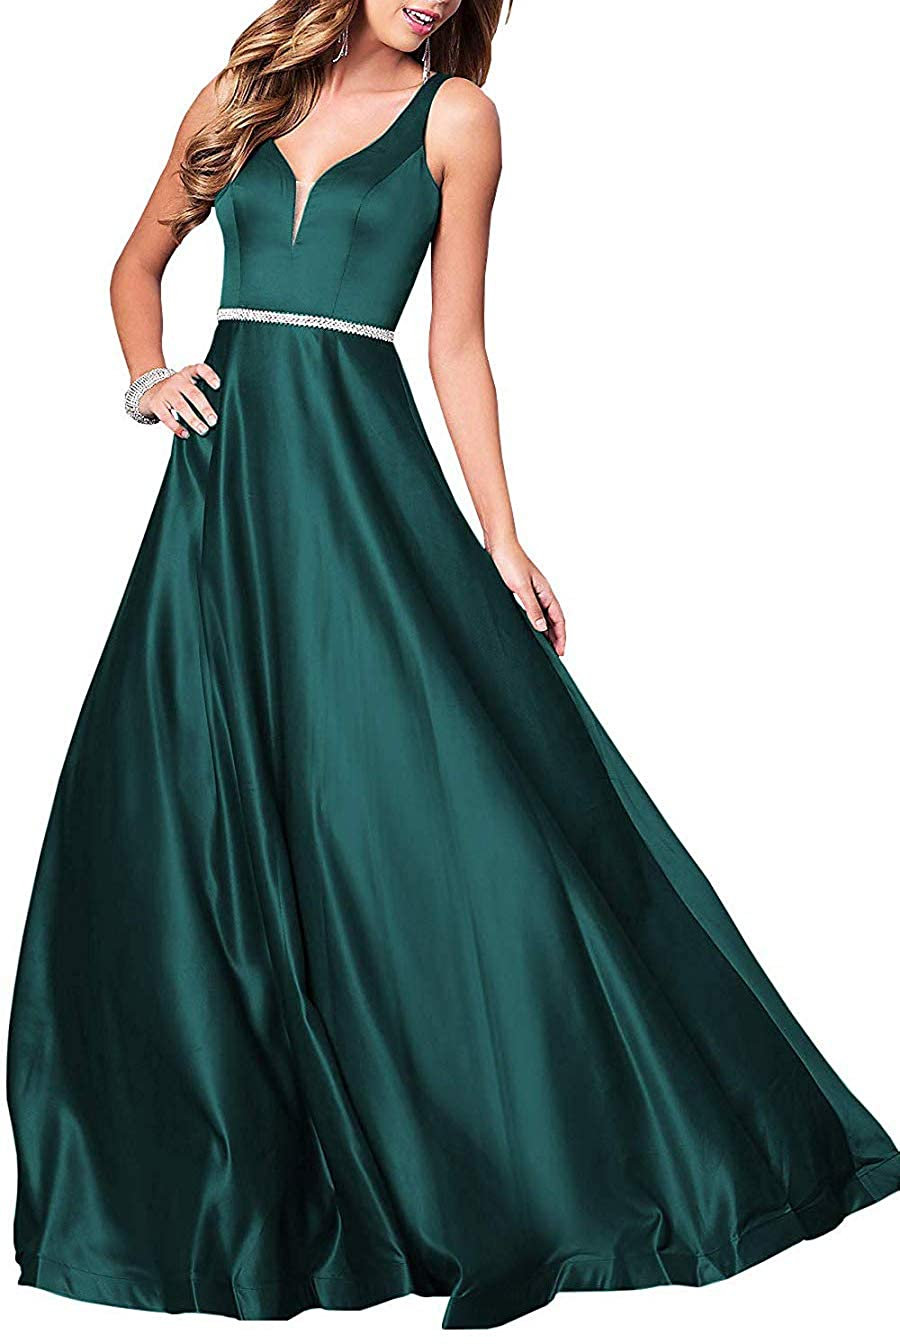 Peacock Deep VNeck Long Satin Prom Dress with Beaded Pocket Formal Evening Party Gown